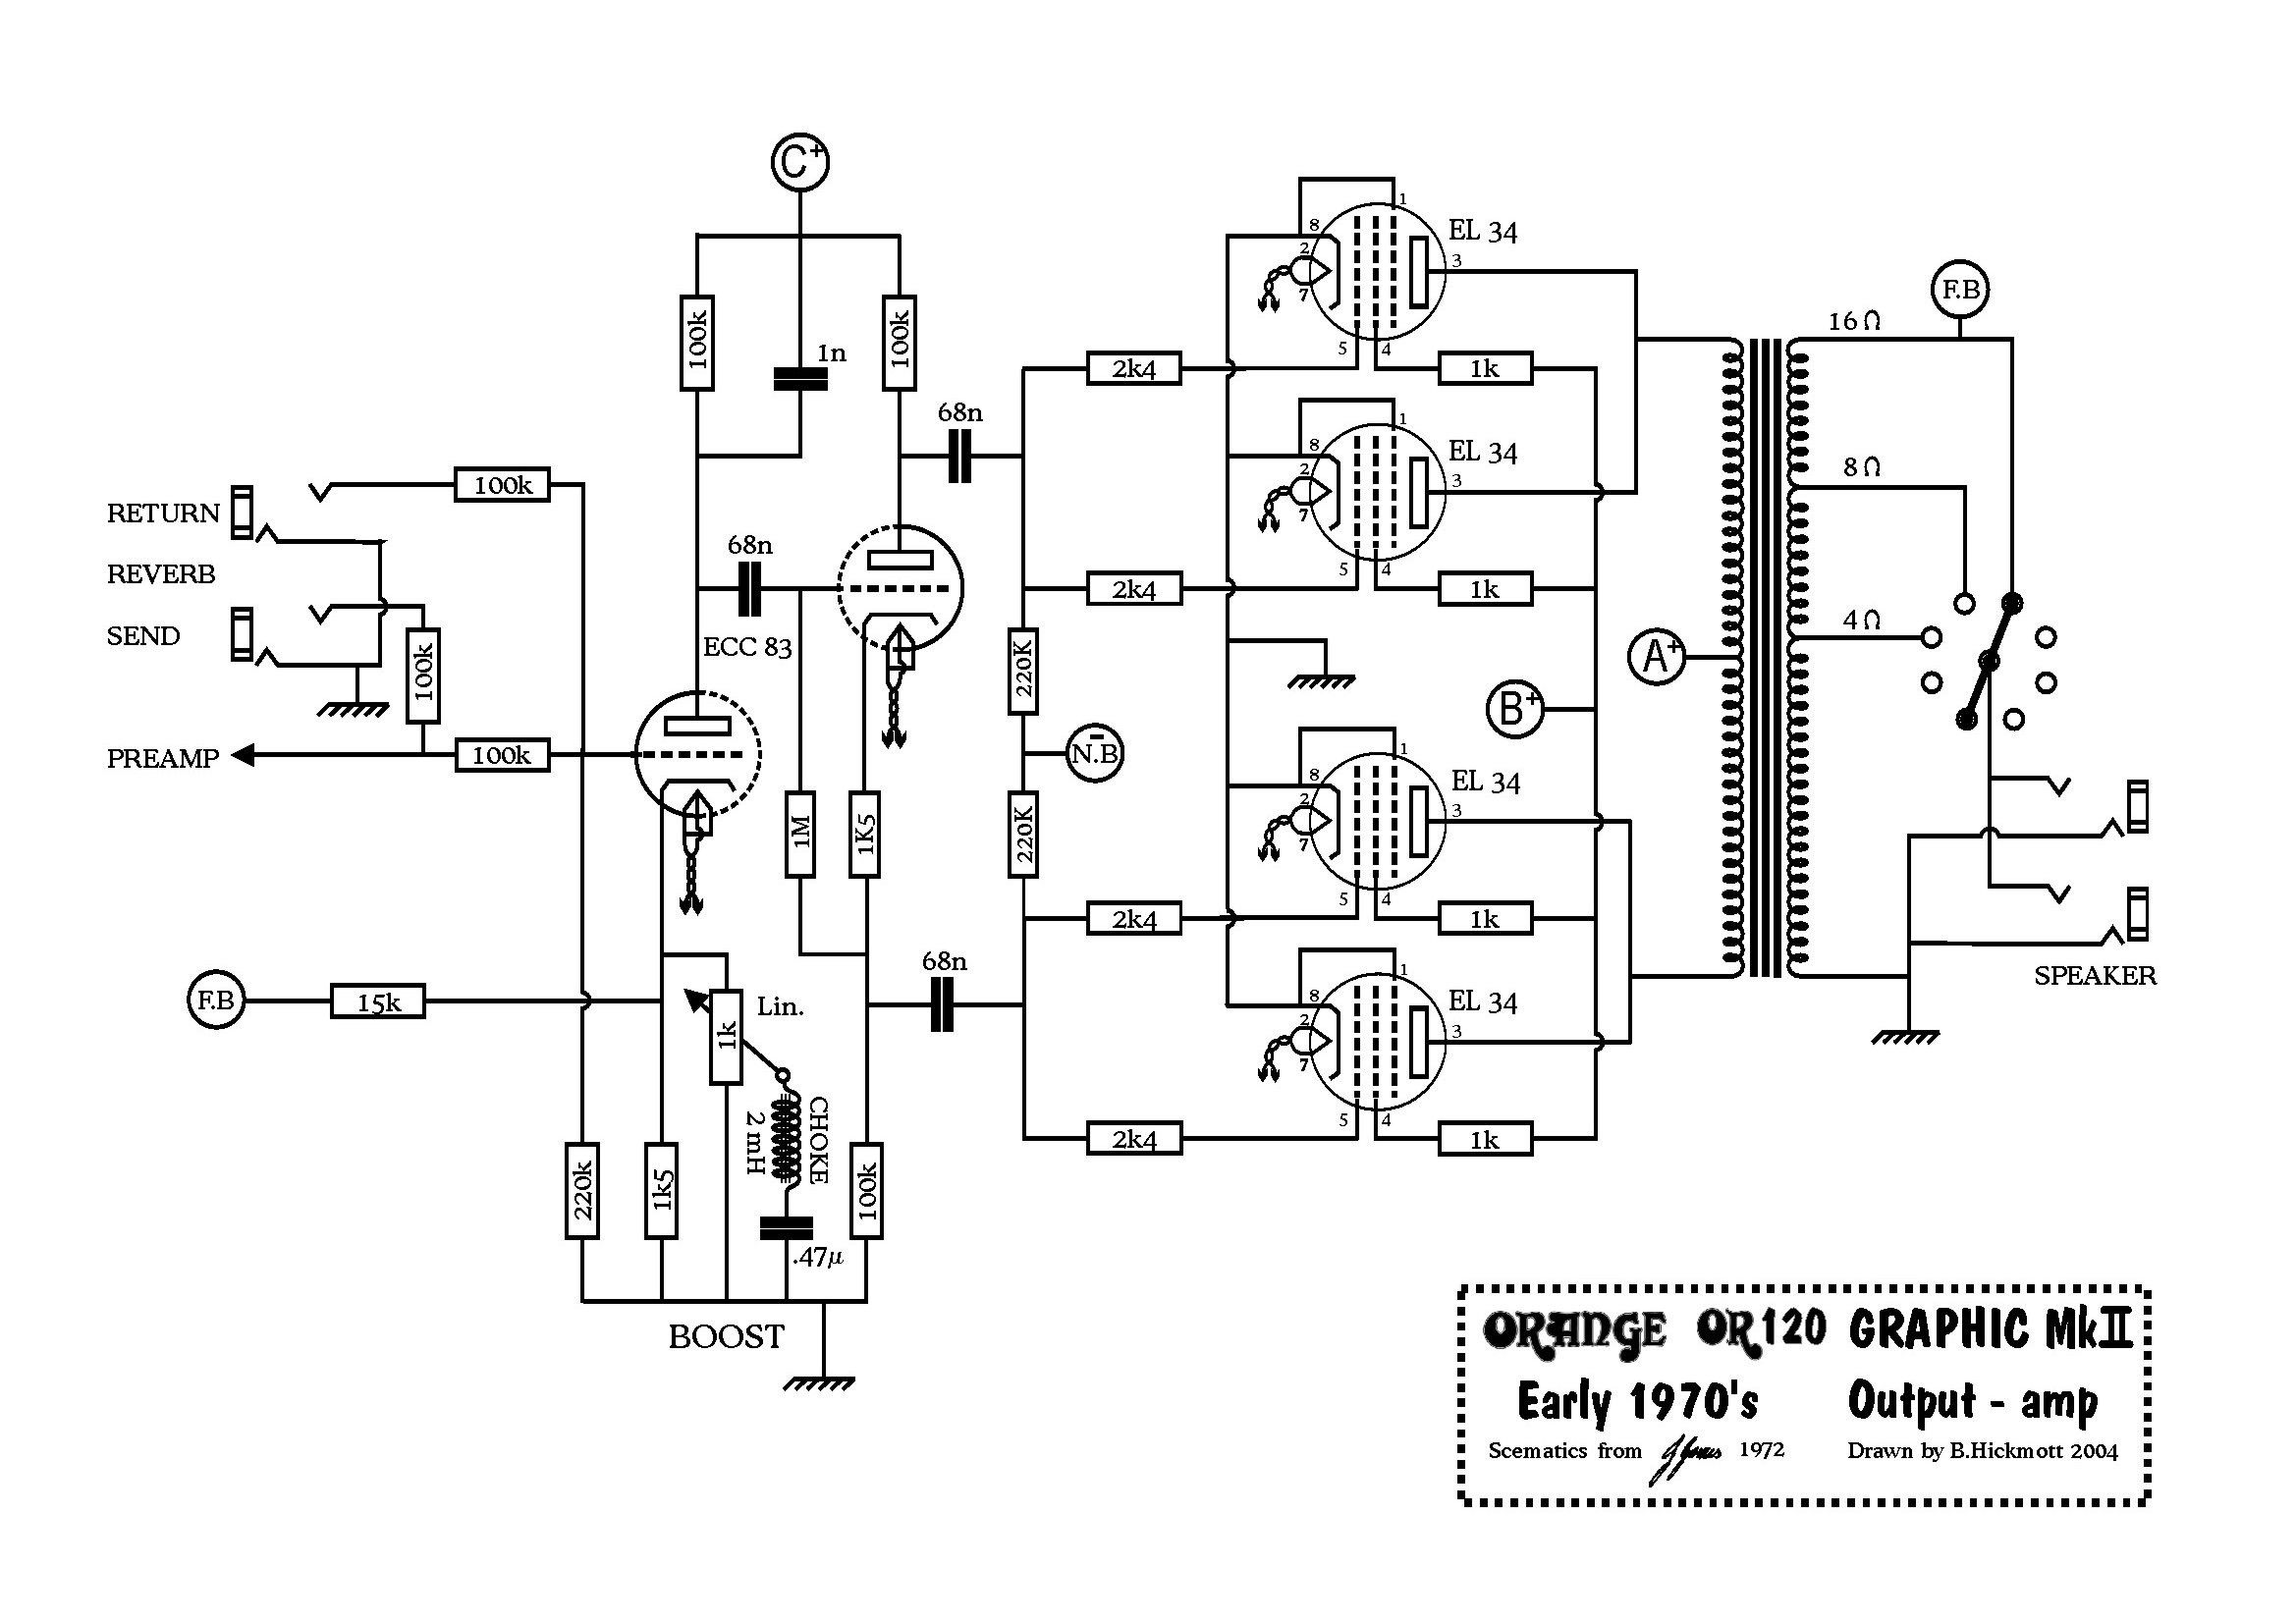 hight resolution of guitar amplifier circuit diagram with pcb layout new the orange amp mods page